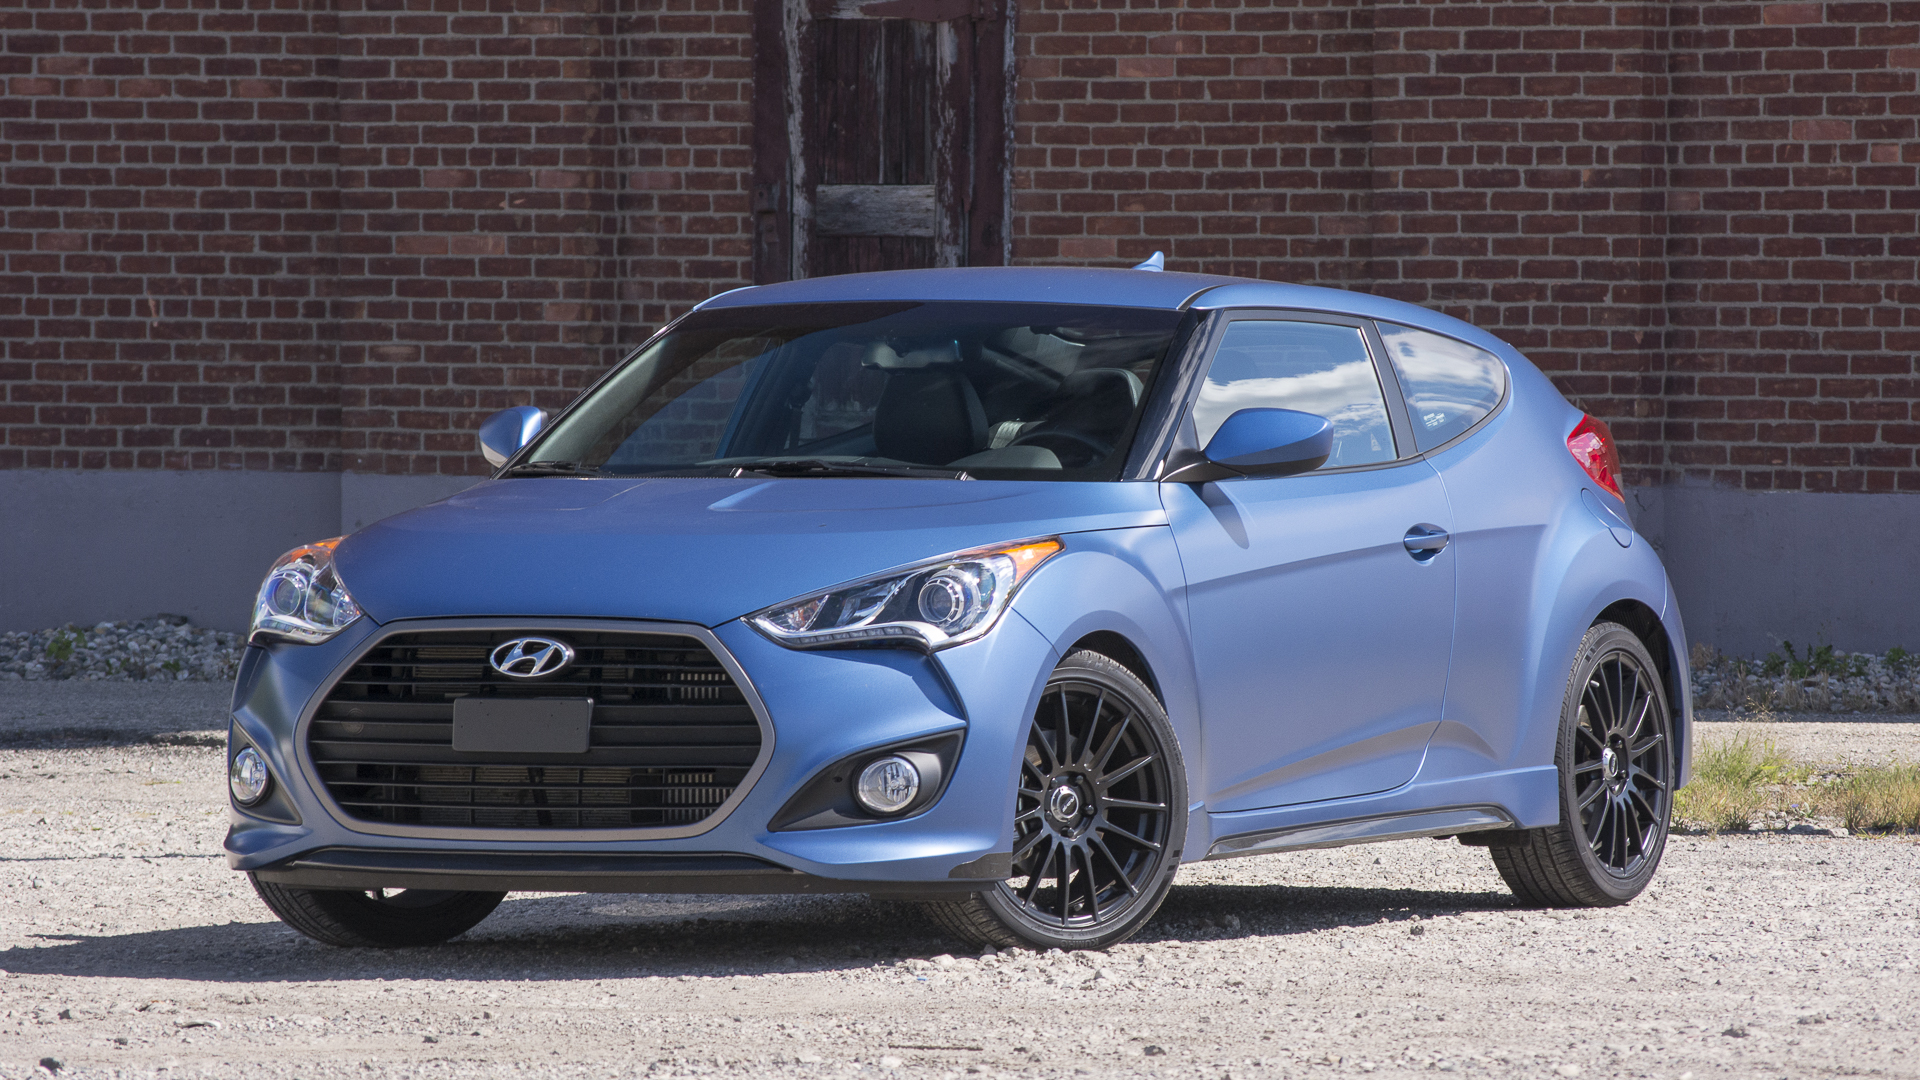 2016 Hyundai Veloster Turbo Rally Edition Quick Spin W Video Autoblog